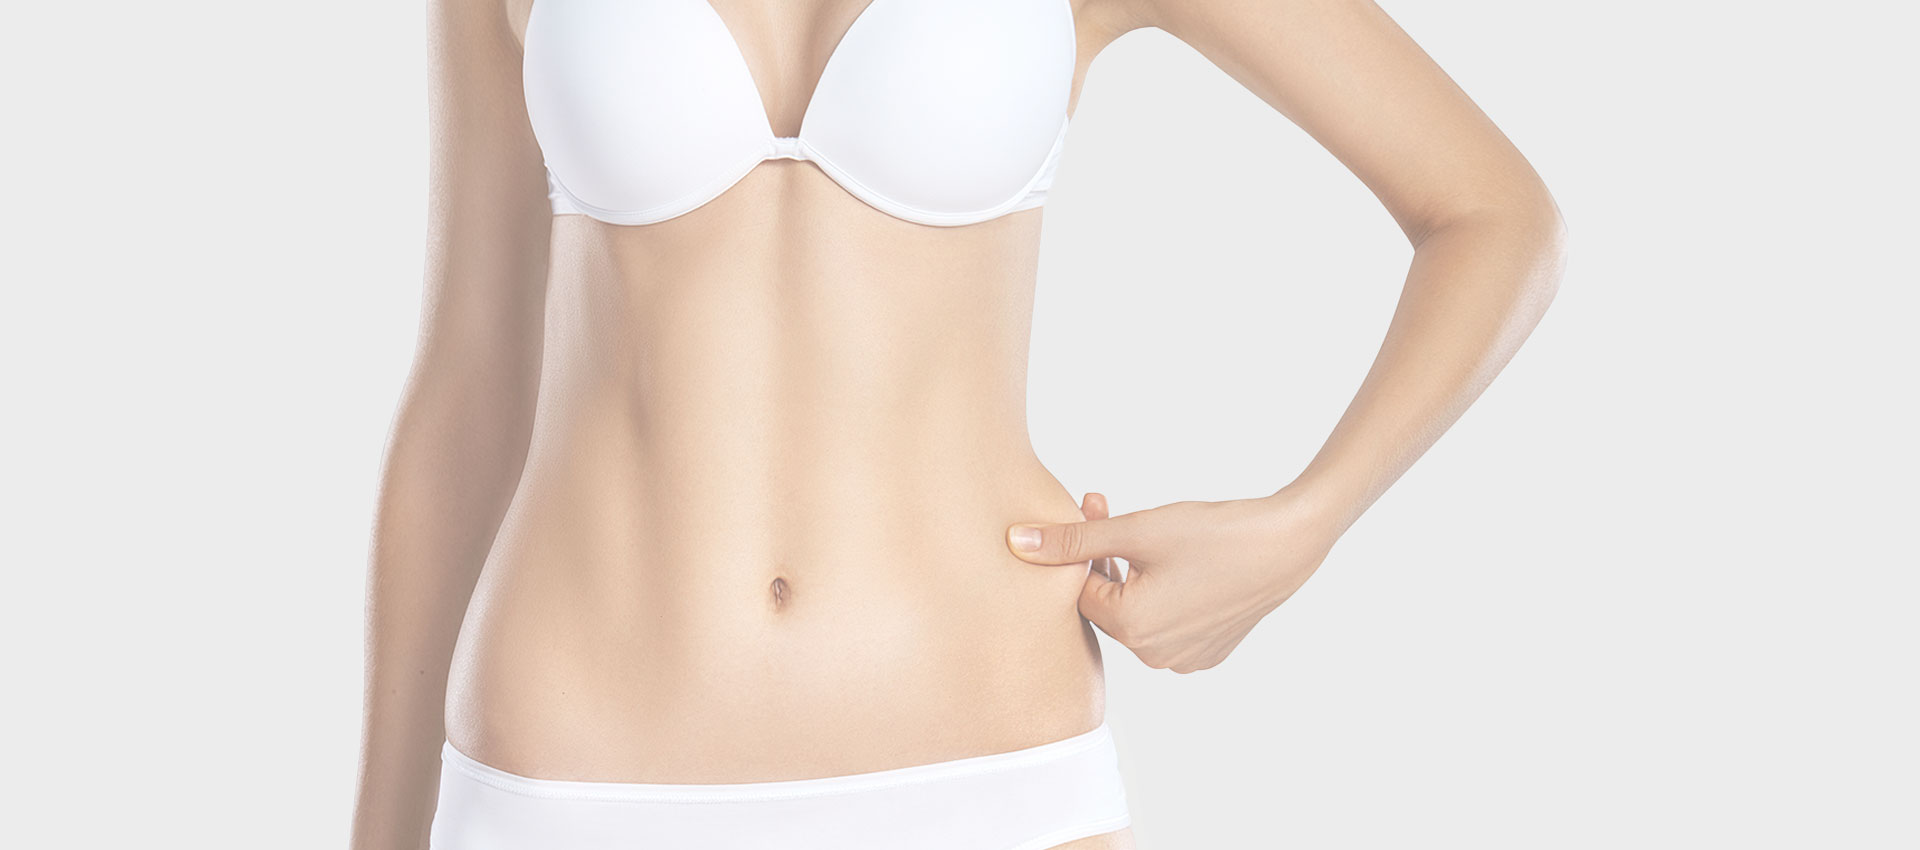 Liposuction fat removal